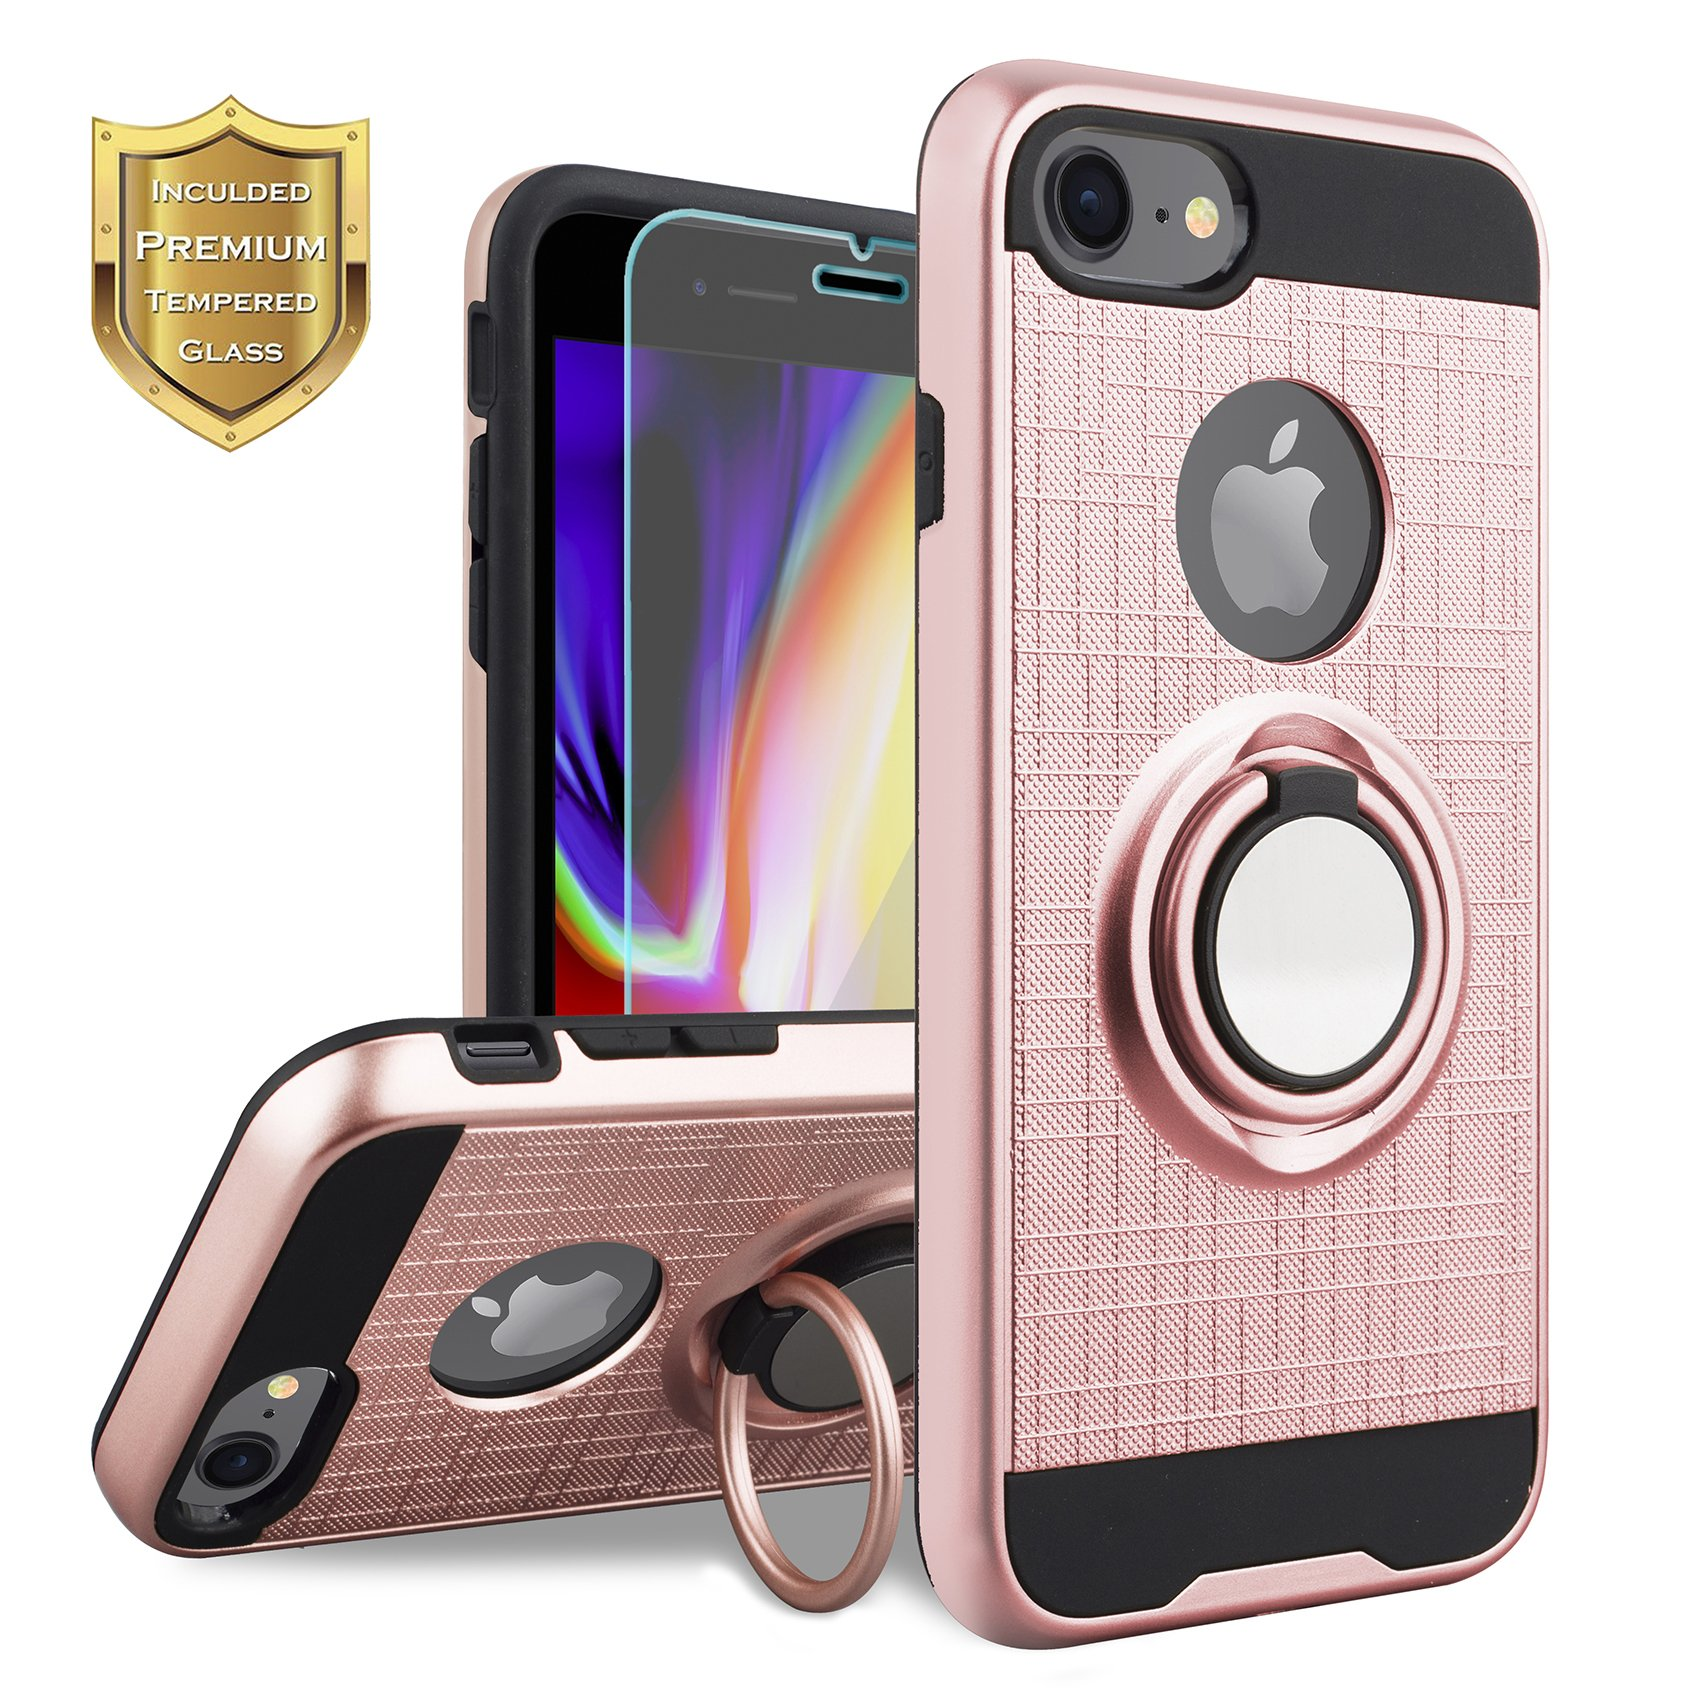 KACHEN Compatible for iPhone 8, iPhone 7, 360 Degree Rotating Ring Grip Kickstand Case [Tempered Screen Glass] Dual Layer Protection Compatible with Magnetic Car Phone Mount, Rose Gold